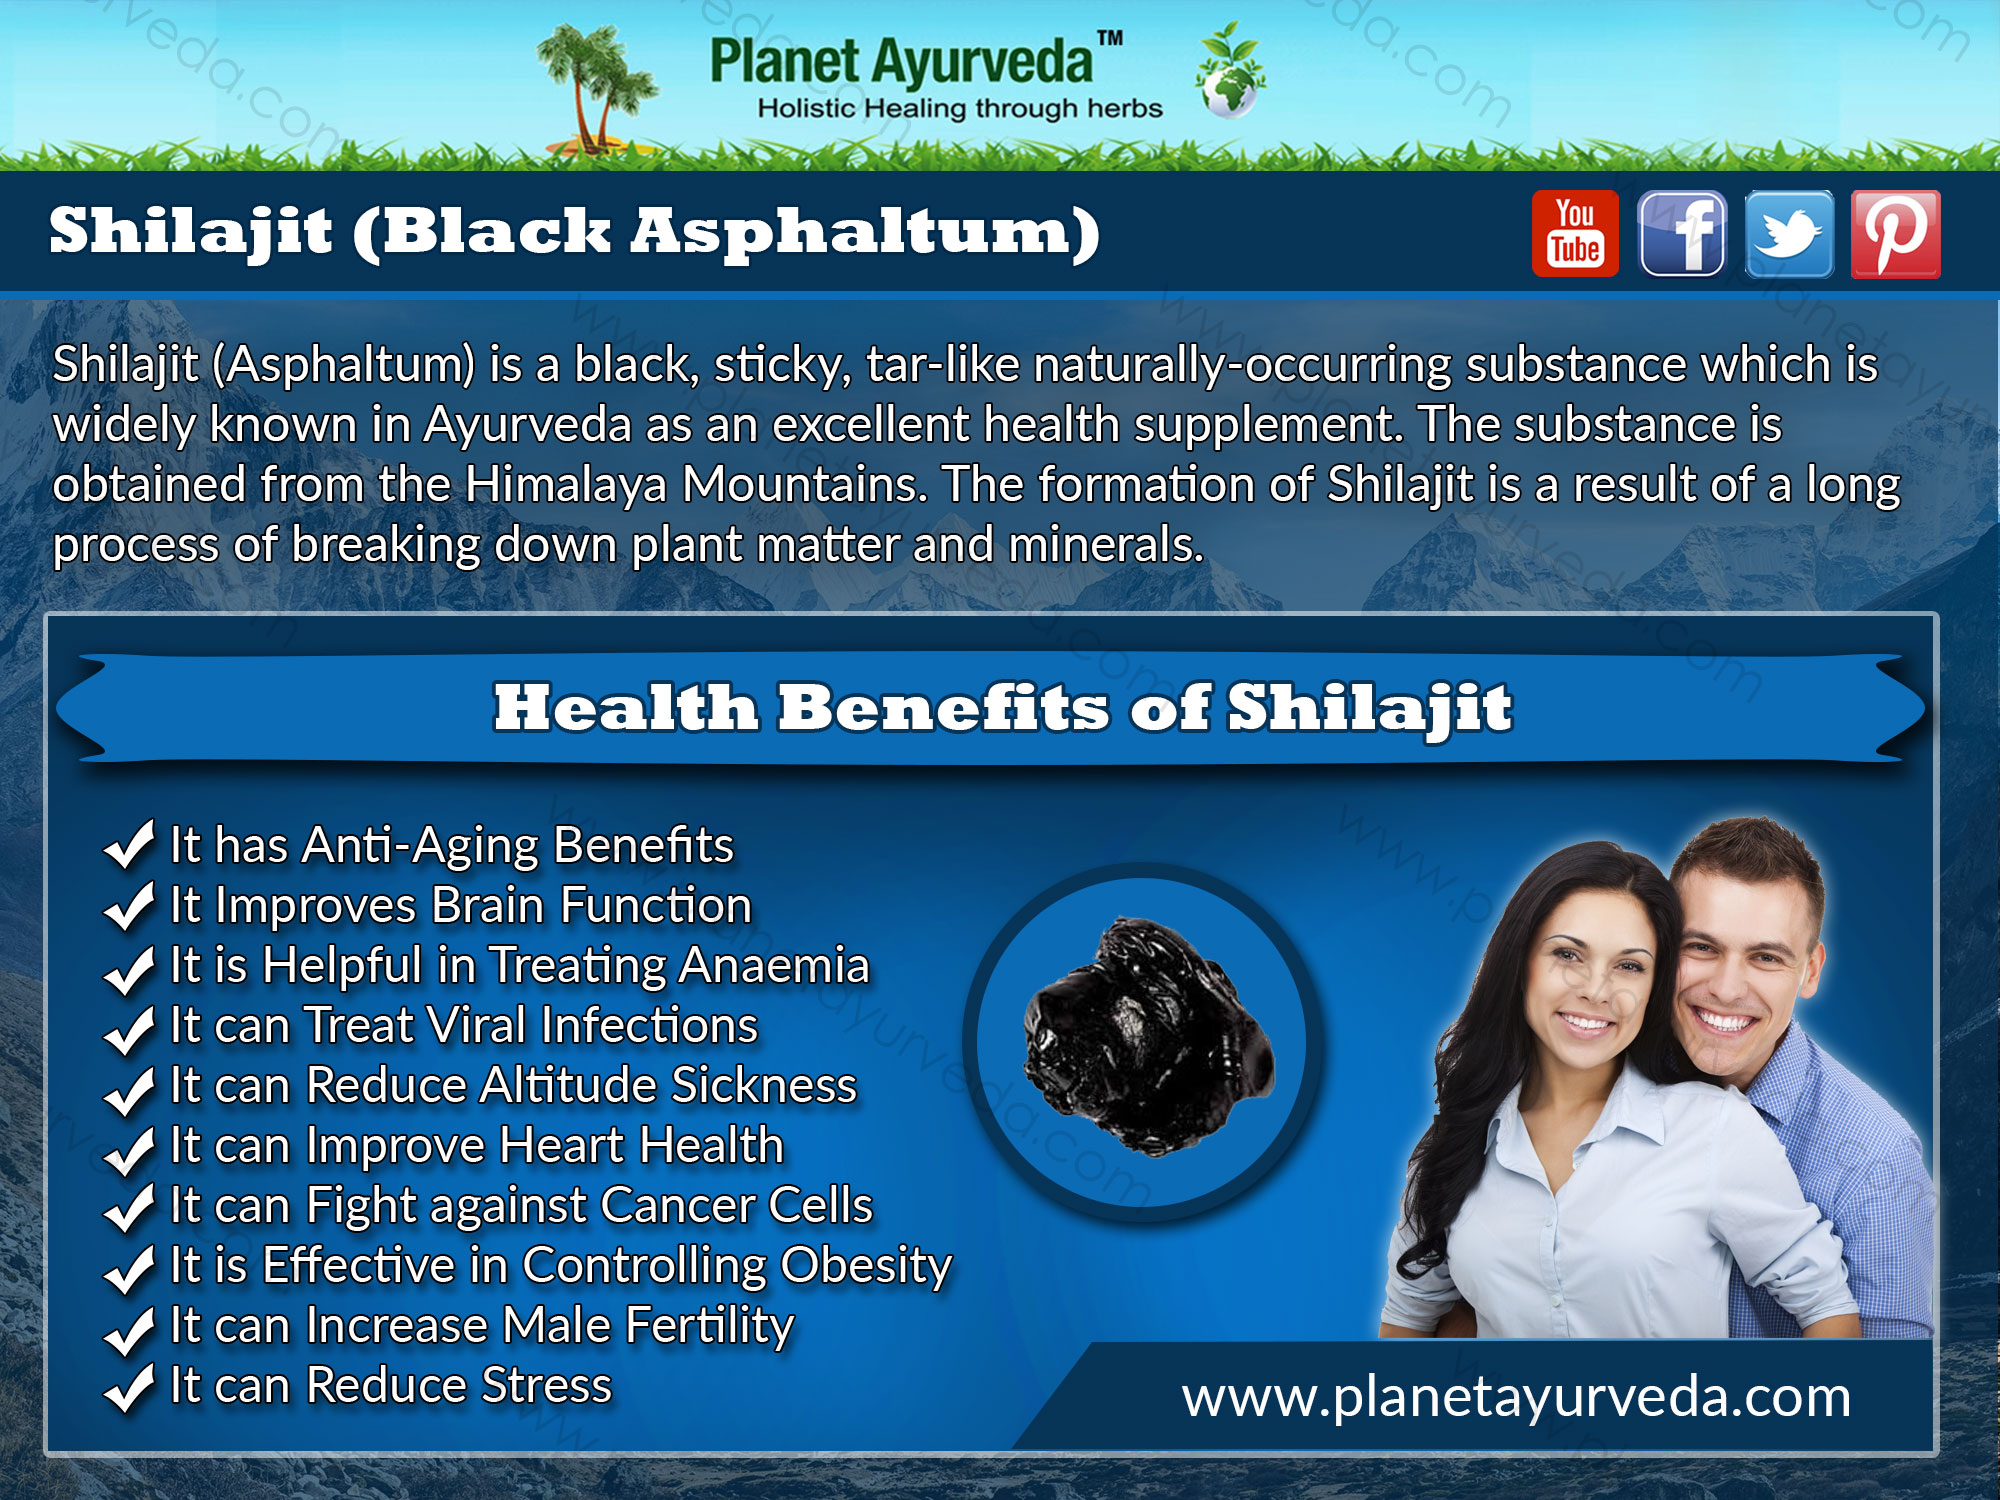 shilajit-&-Benefits